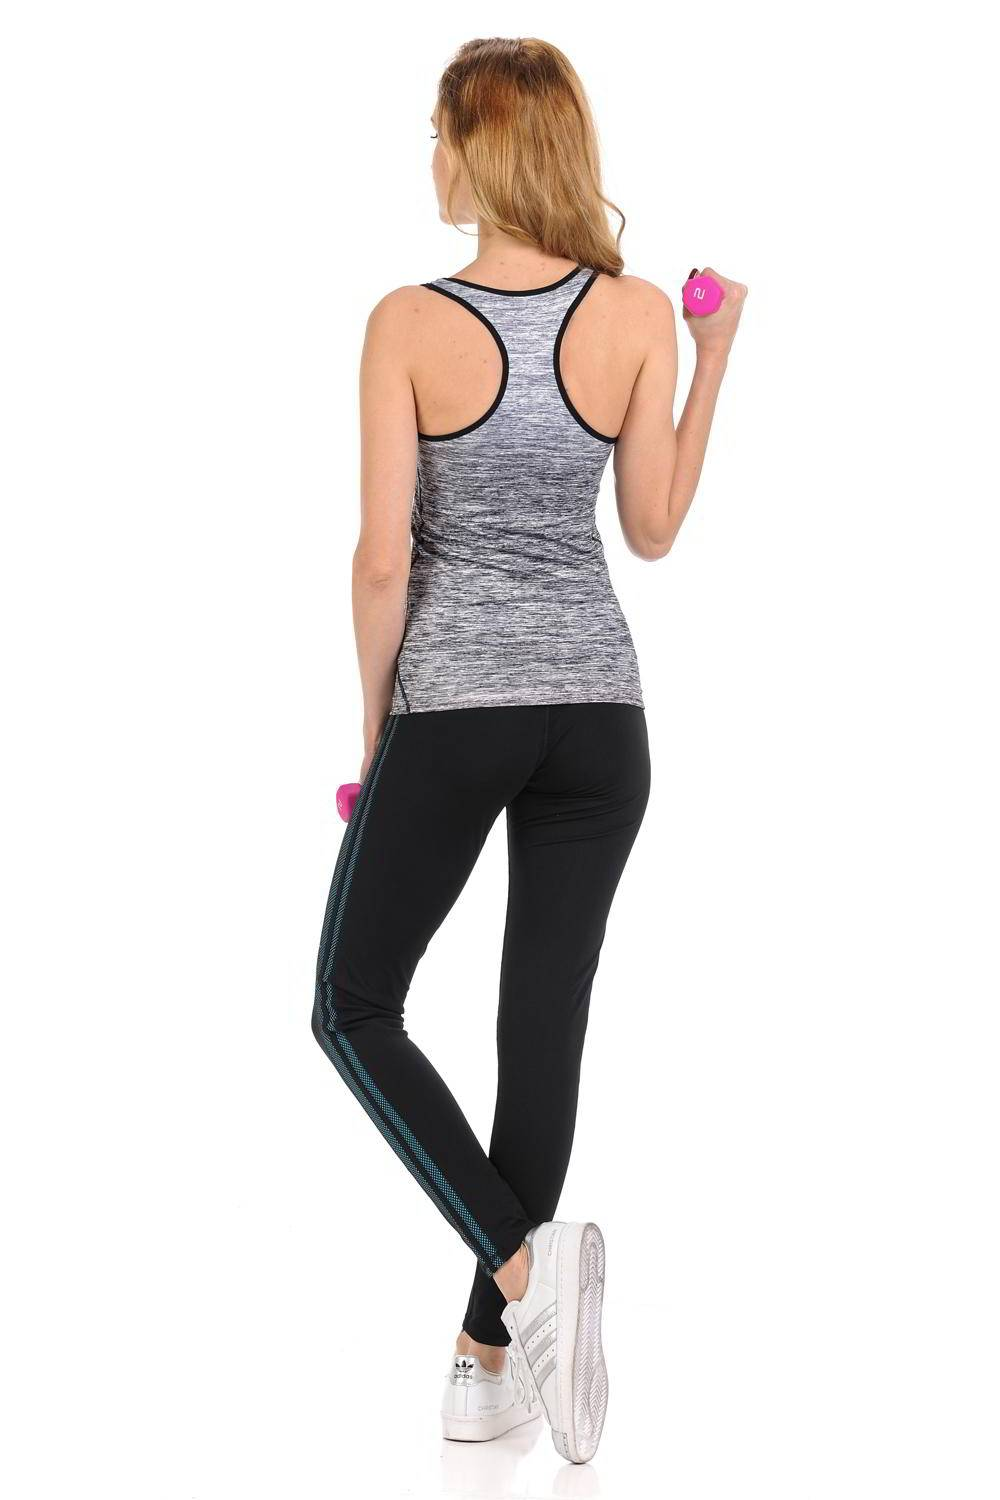 Diamante Women's Power Flex Yoga Pants Leggings Sportswear